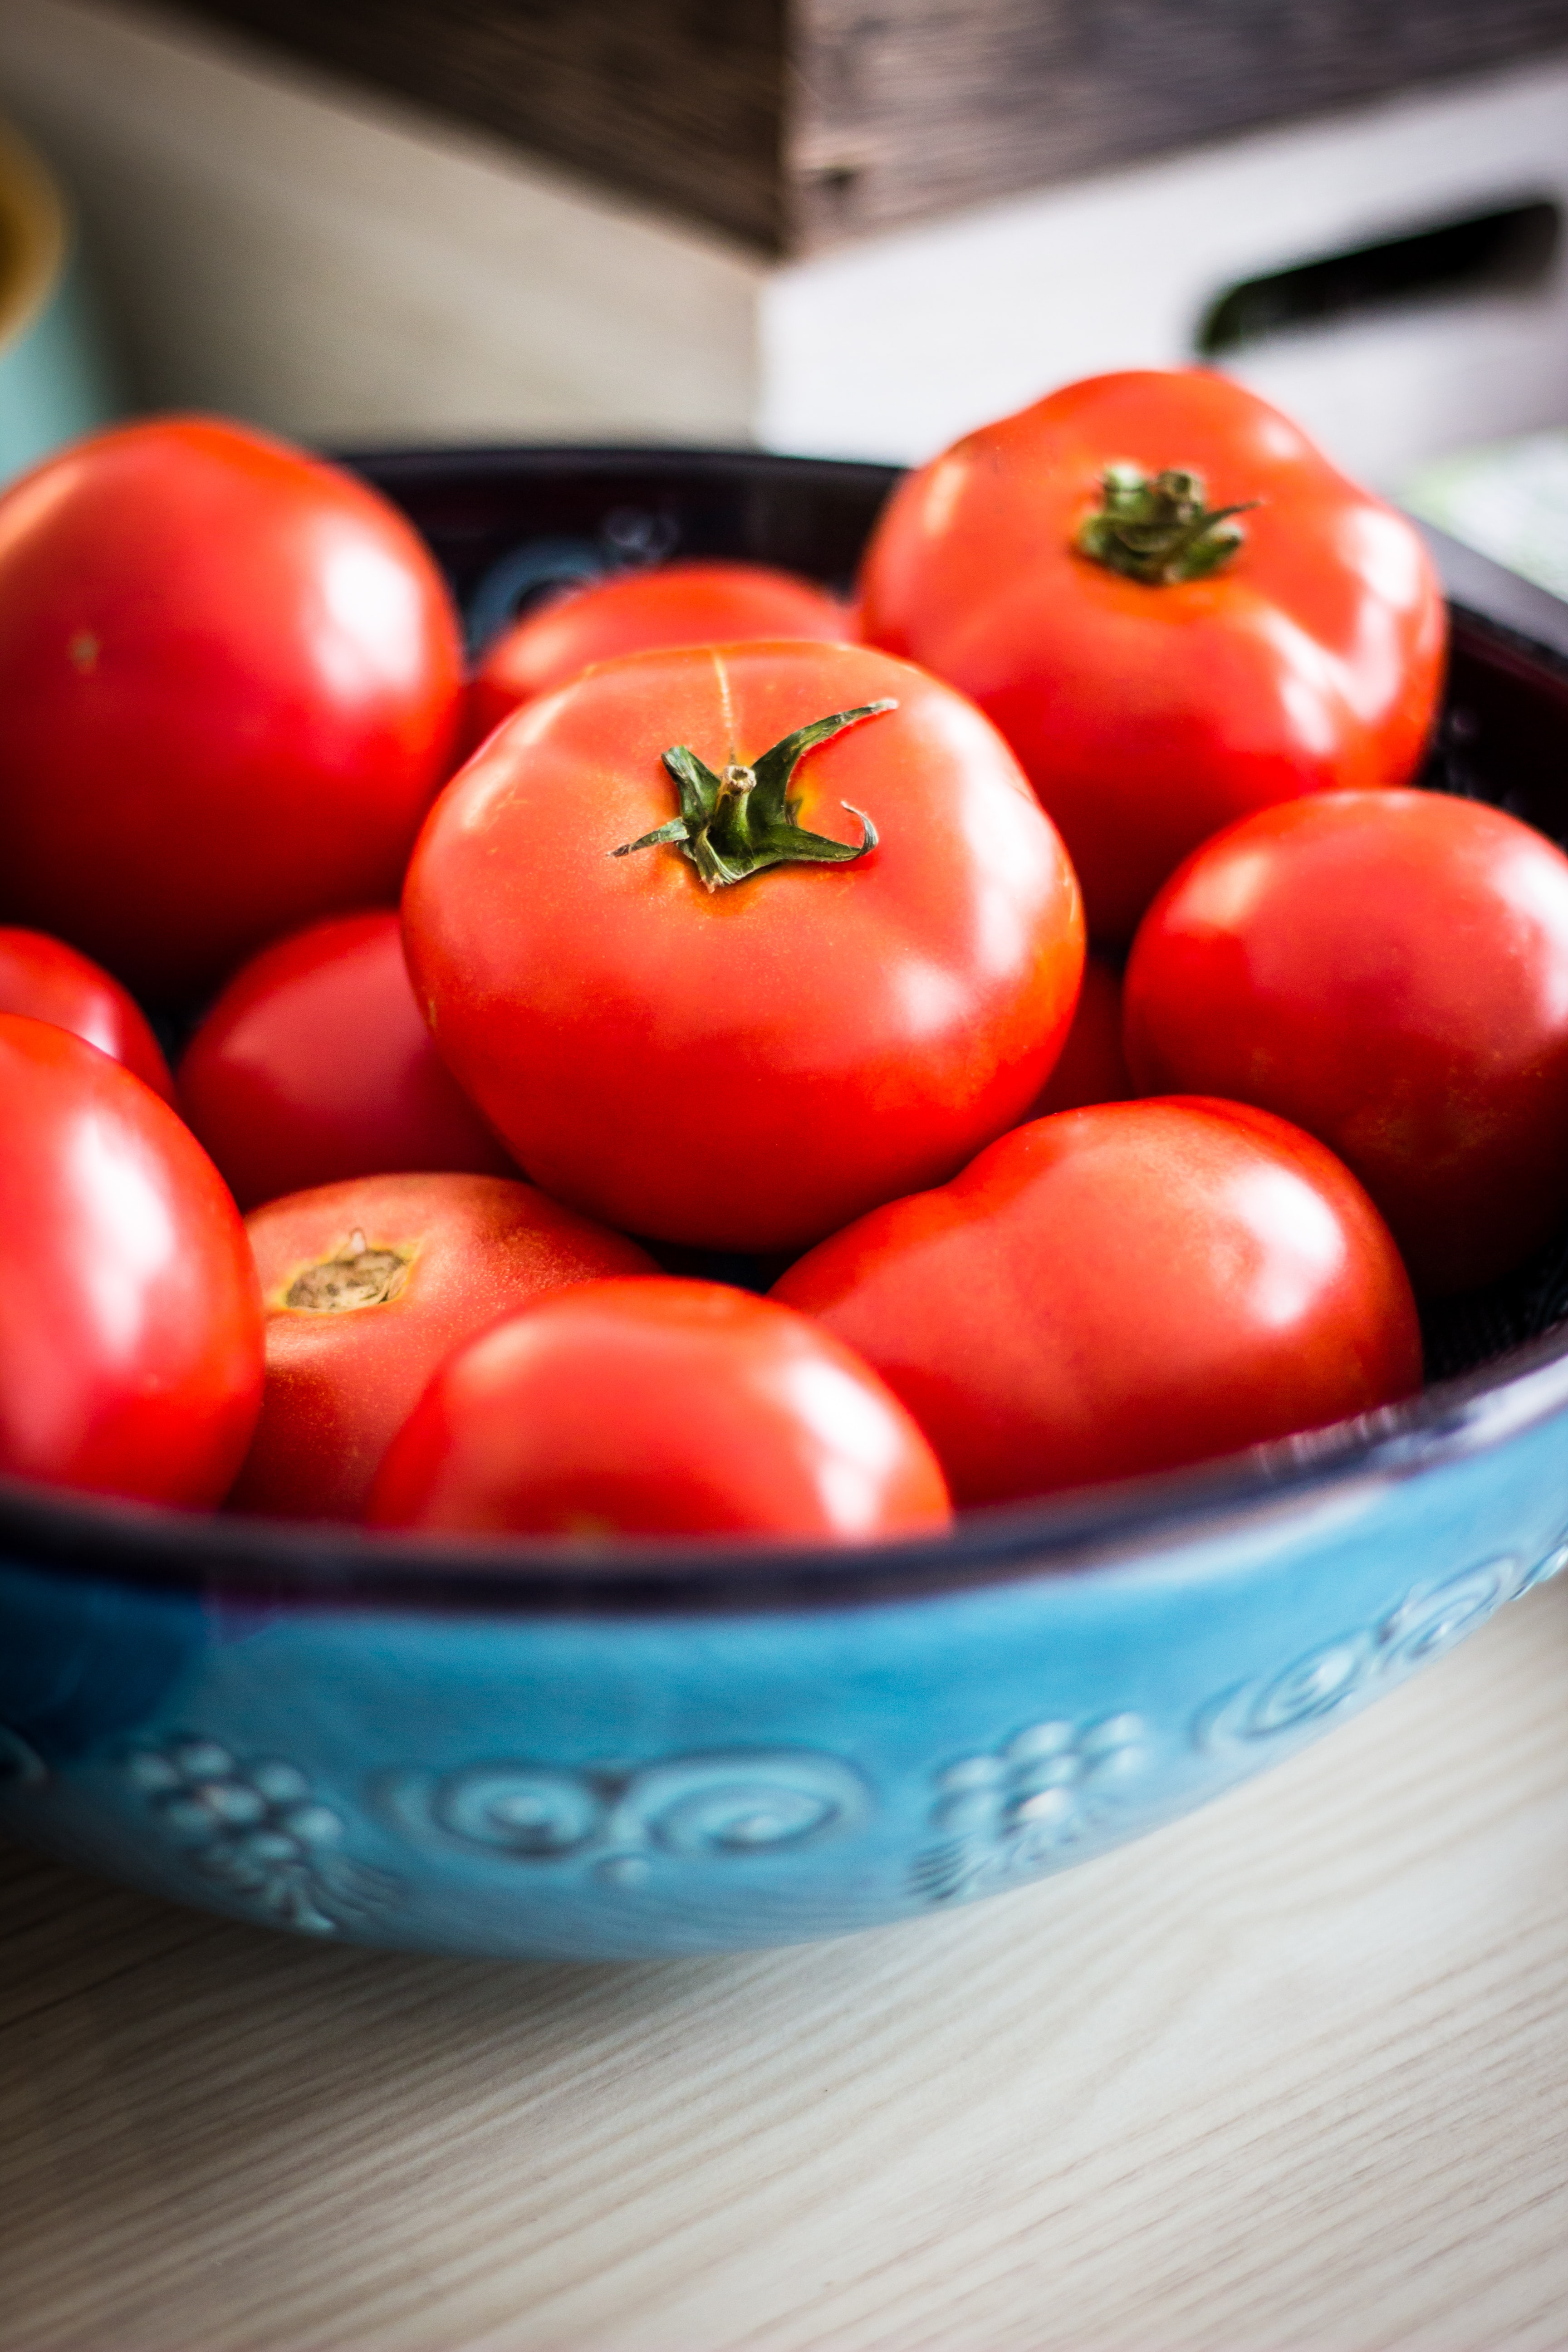 a bowl of red tomatoes